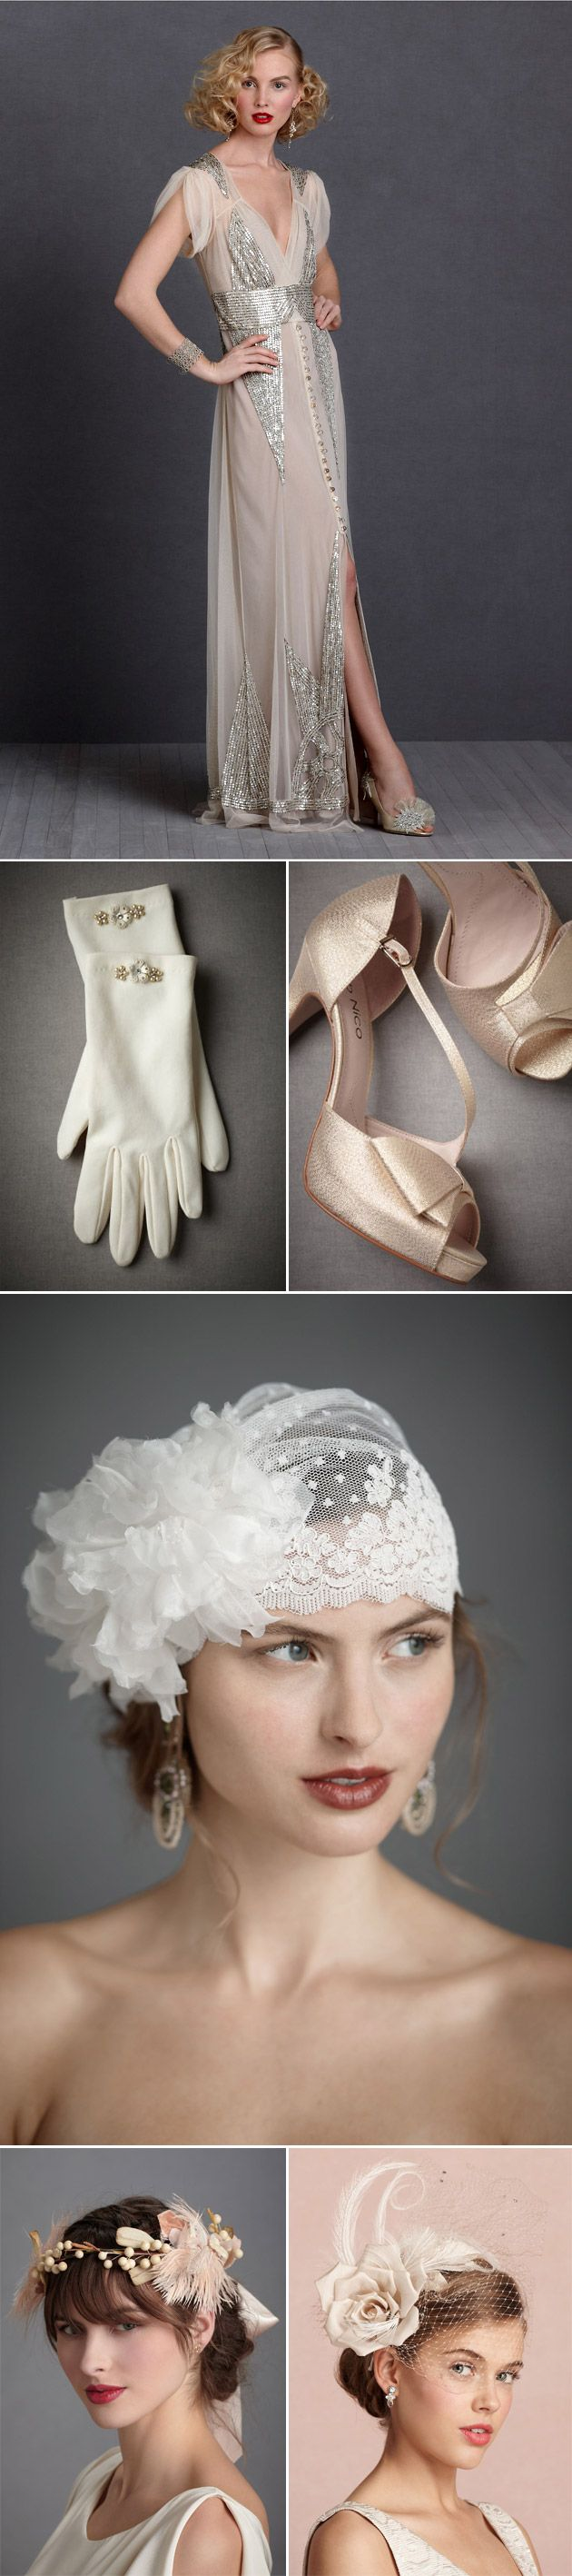 20s Fashion Inspiration by BHLDN   Check out the cap veil on this